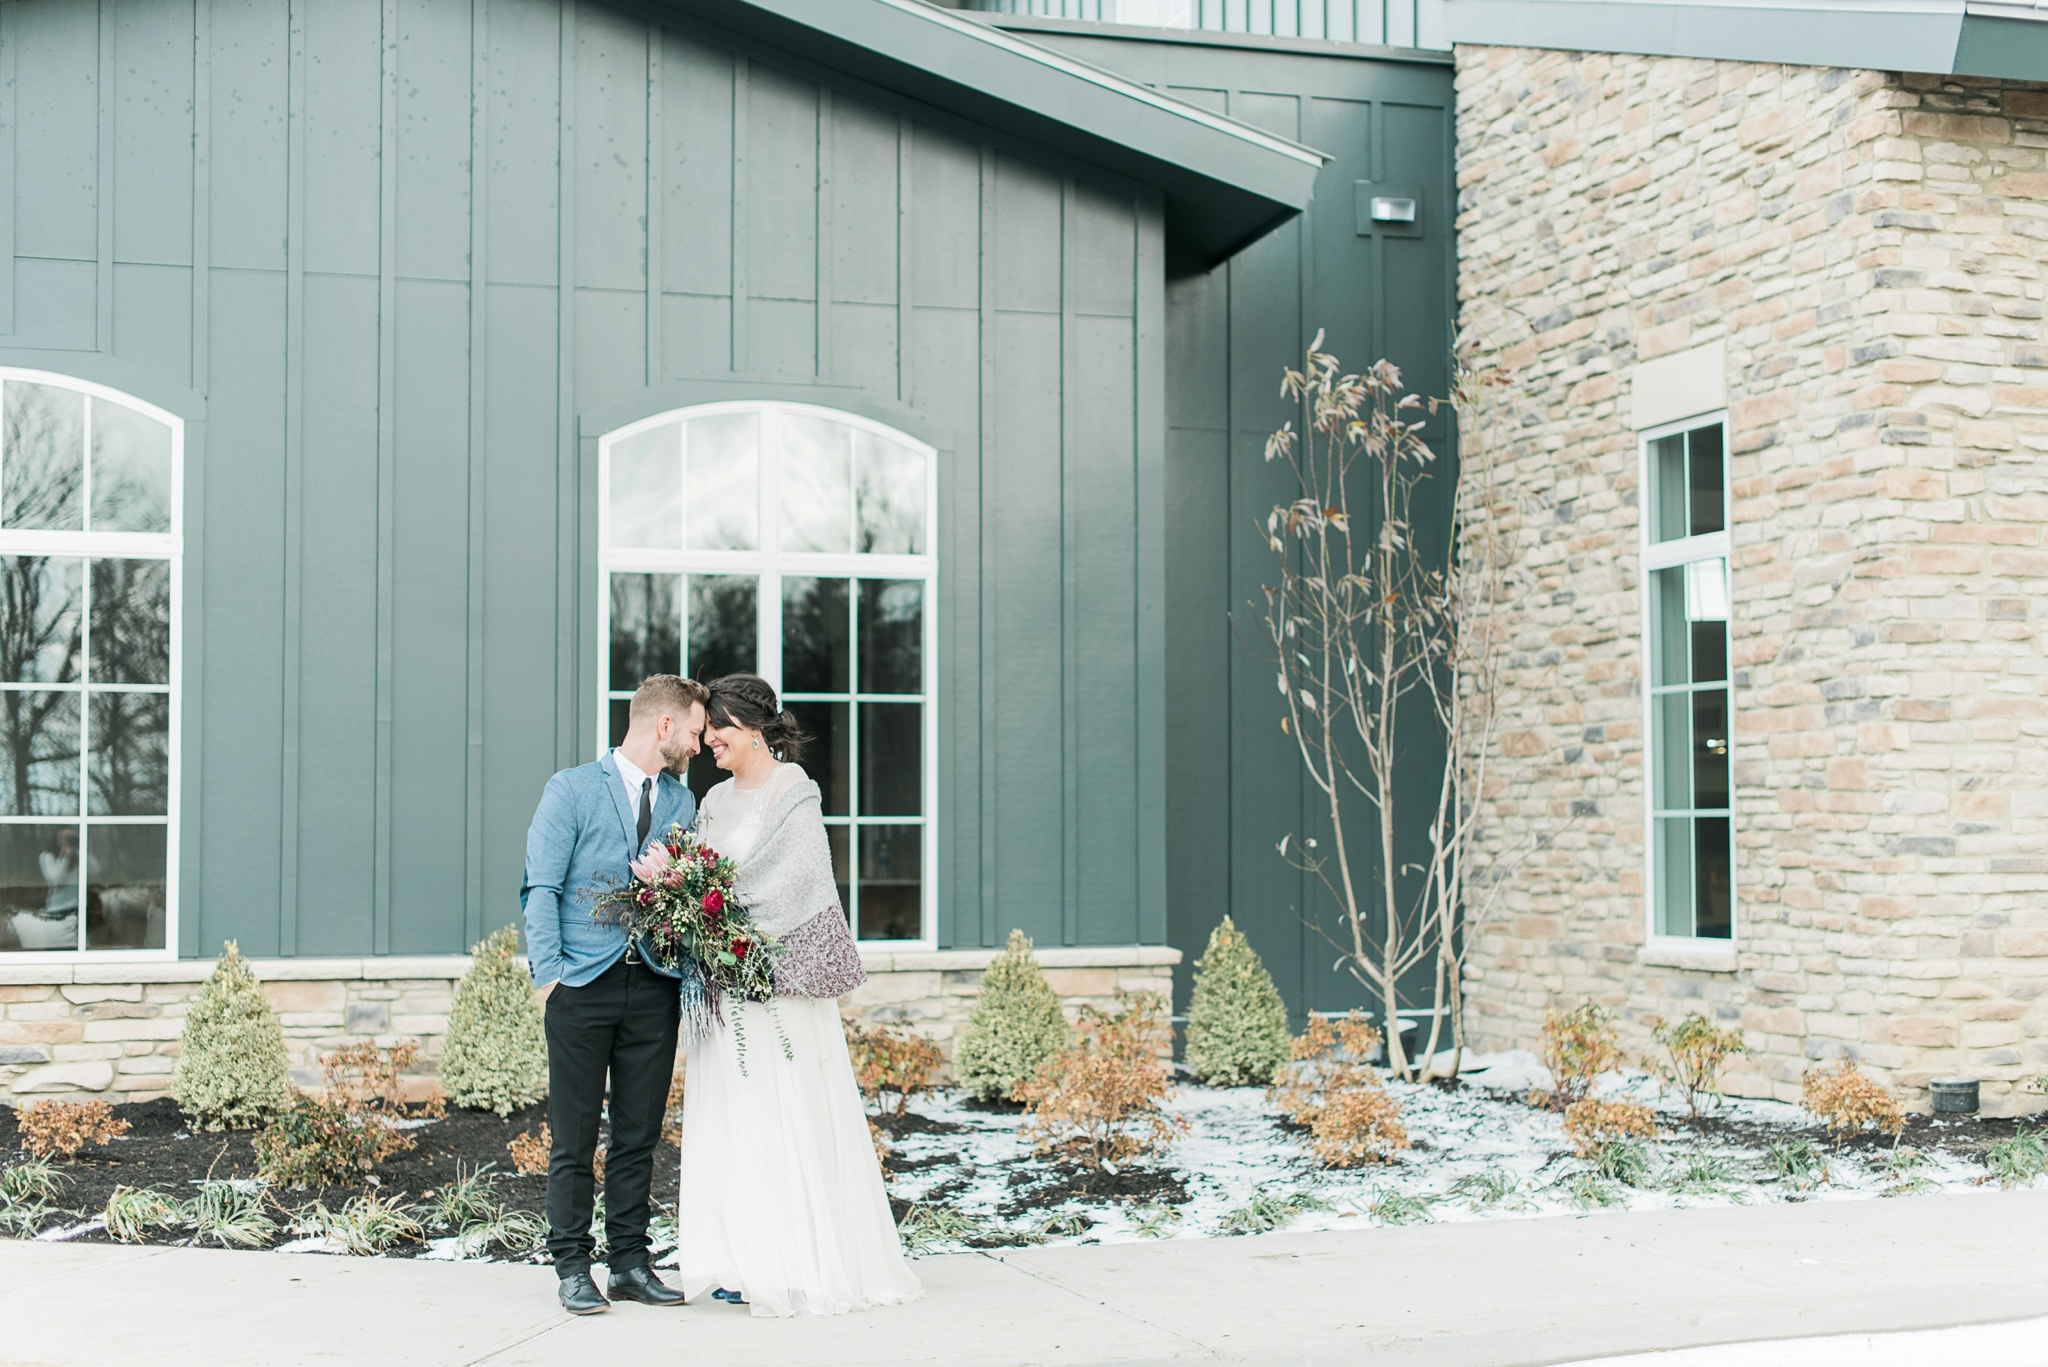 the-estate-new-albany-ohio-winter-wedding-inspiration-71.jpg